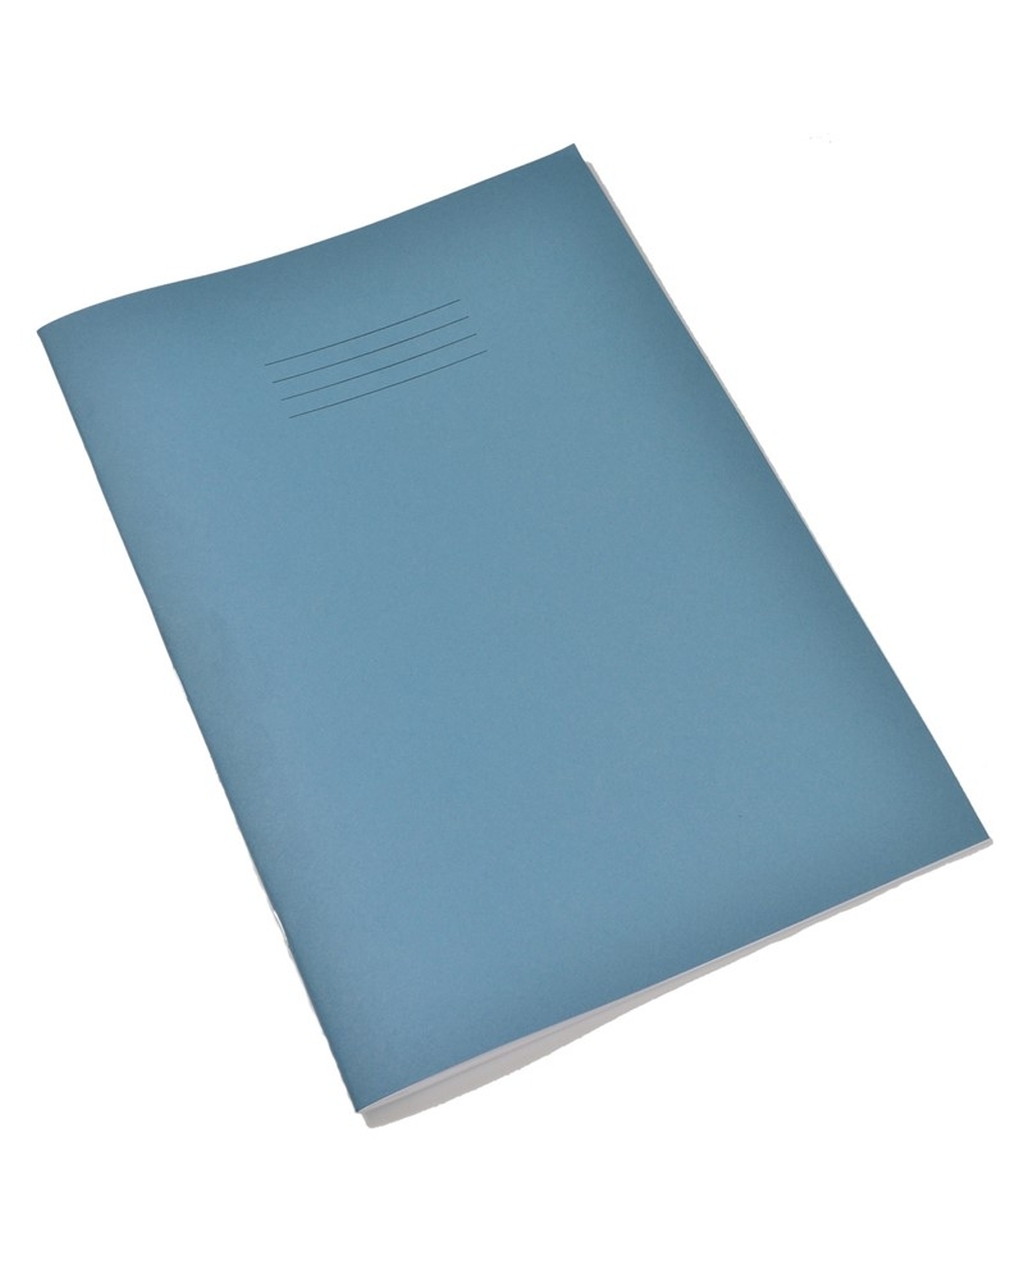 A4 Tinted Ex Books 8mm Ruled & Margin Cream Paper, Light Blue Cover